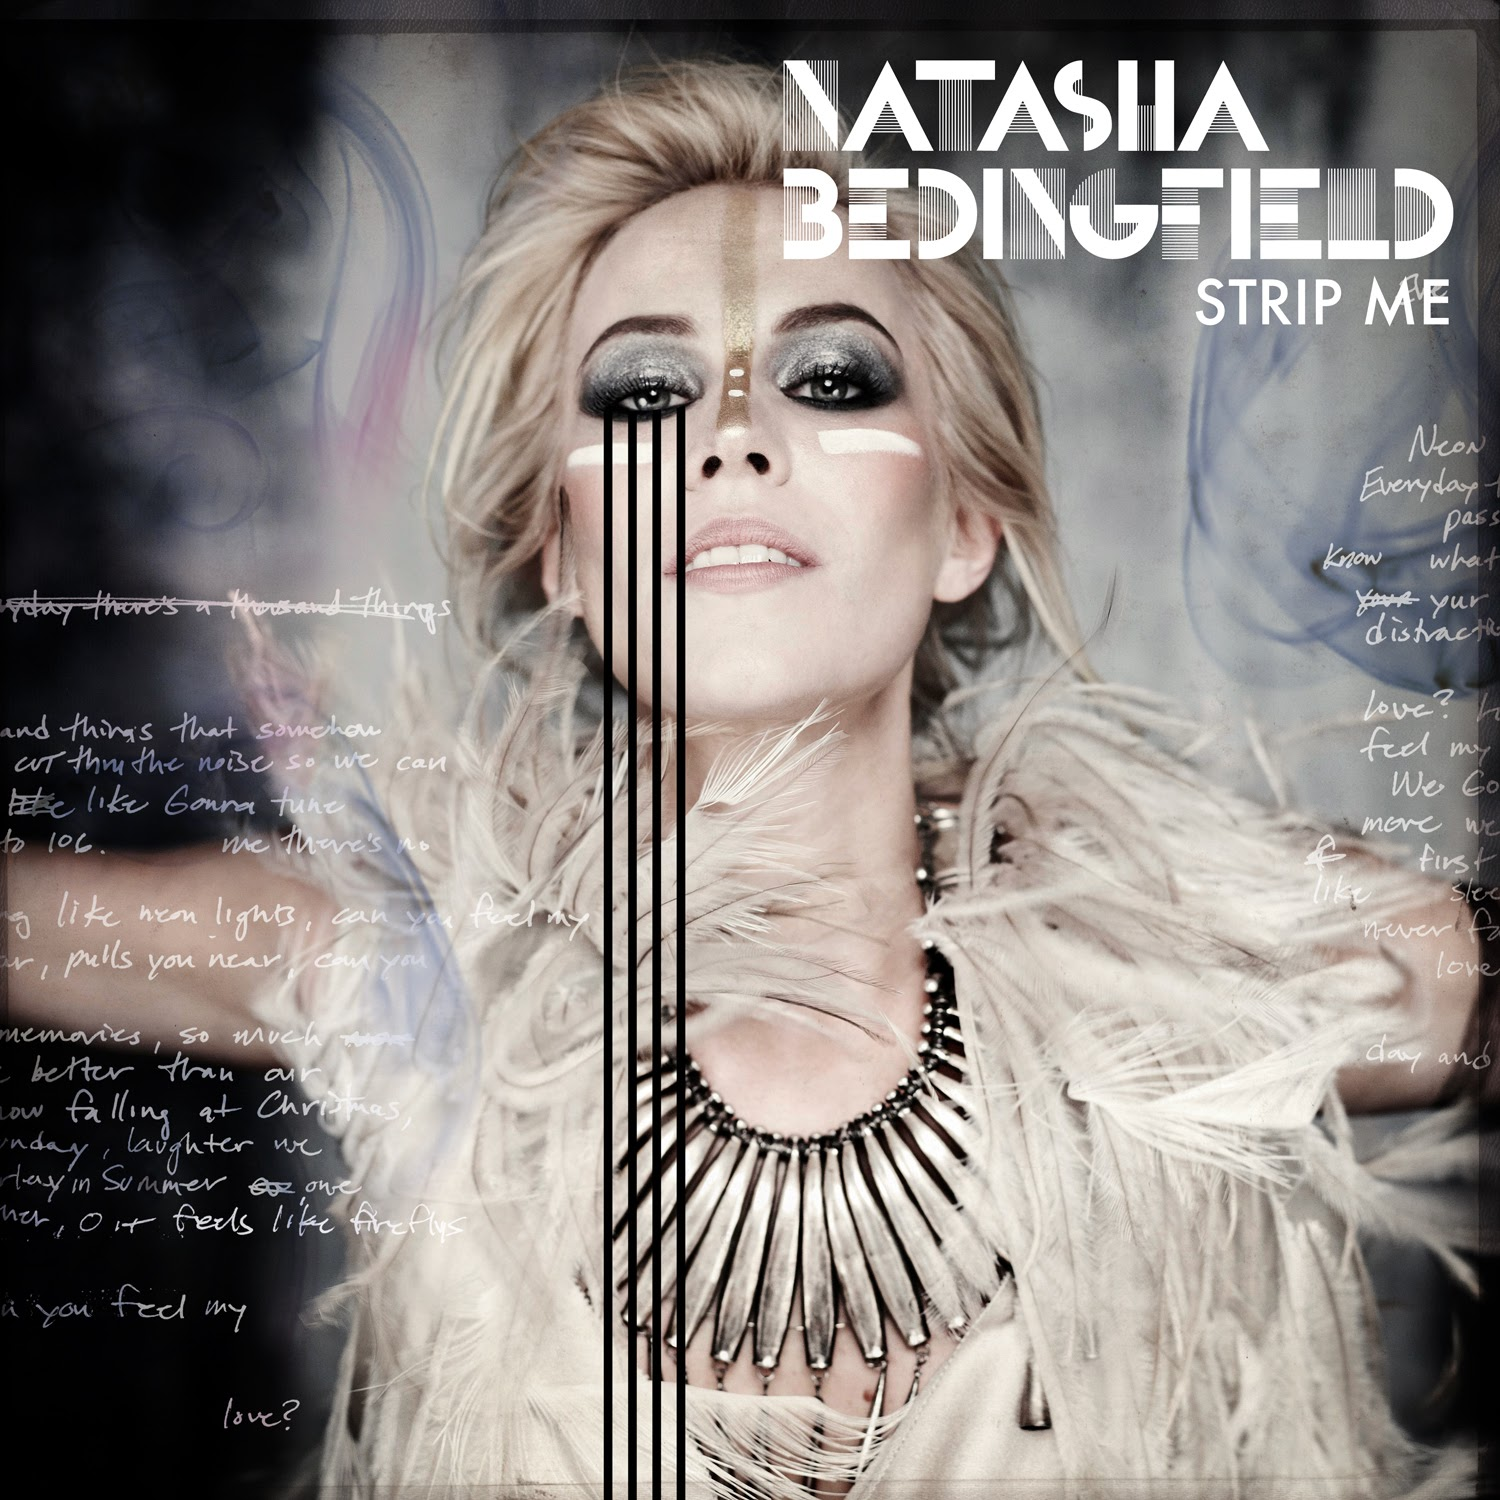 a critique on the album of natasha bedingfield Ok, so i was all prepared to hate this new album from daniel bedingfield's little sister - but i was pleasantly surprised far surpassing her older sibling's efforts, natasha has actually got .